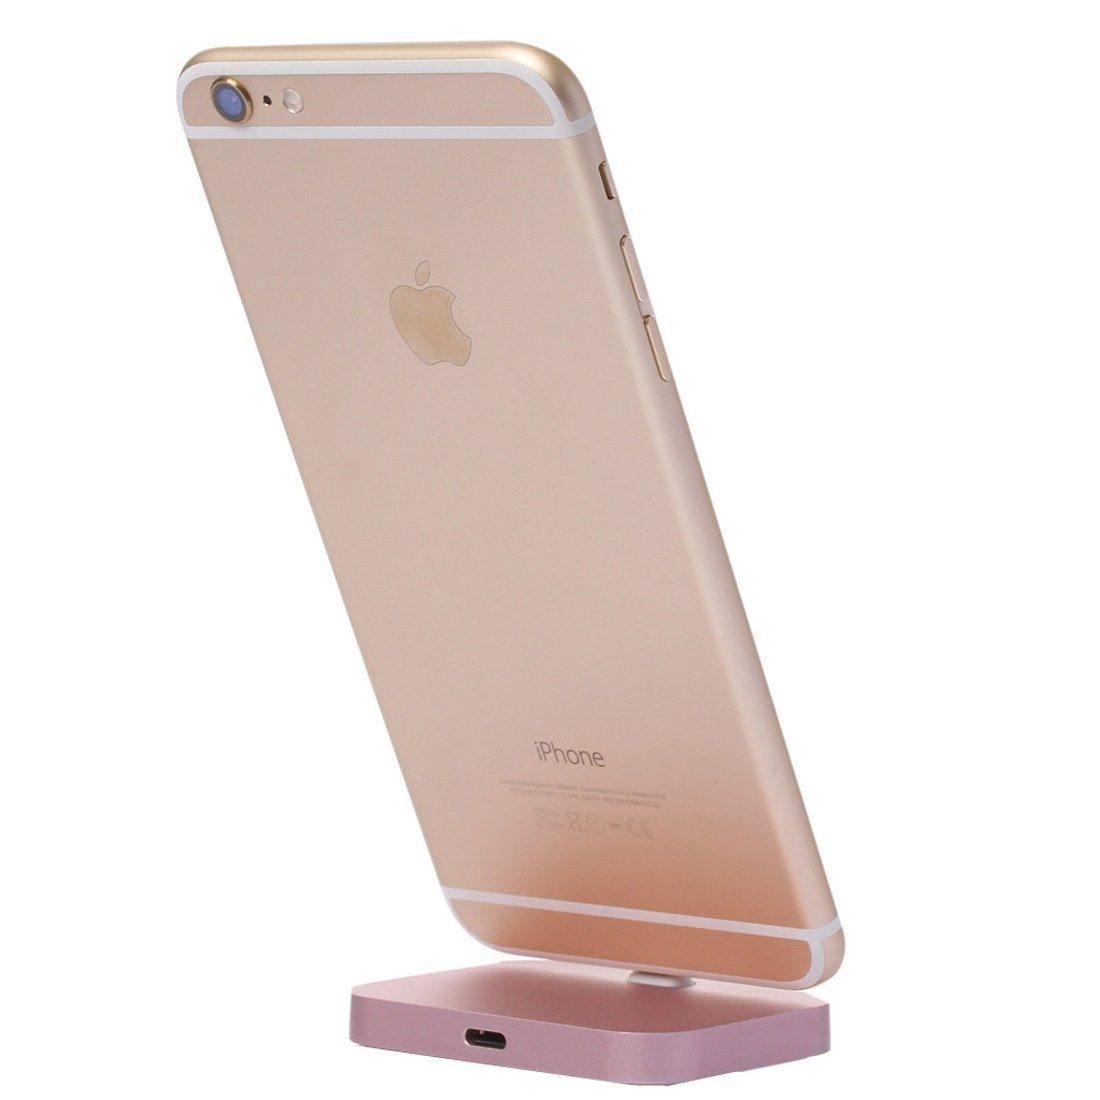 Apple Aluminium Charging Dock, Fone-Stuff - Desktop Charge and Sync Cradle Mount Stand for iPhone 7/Plus 6s Plus & 6 Plus in Rose Gold